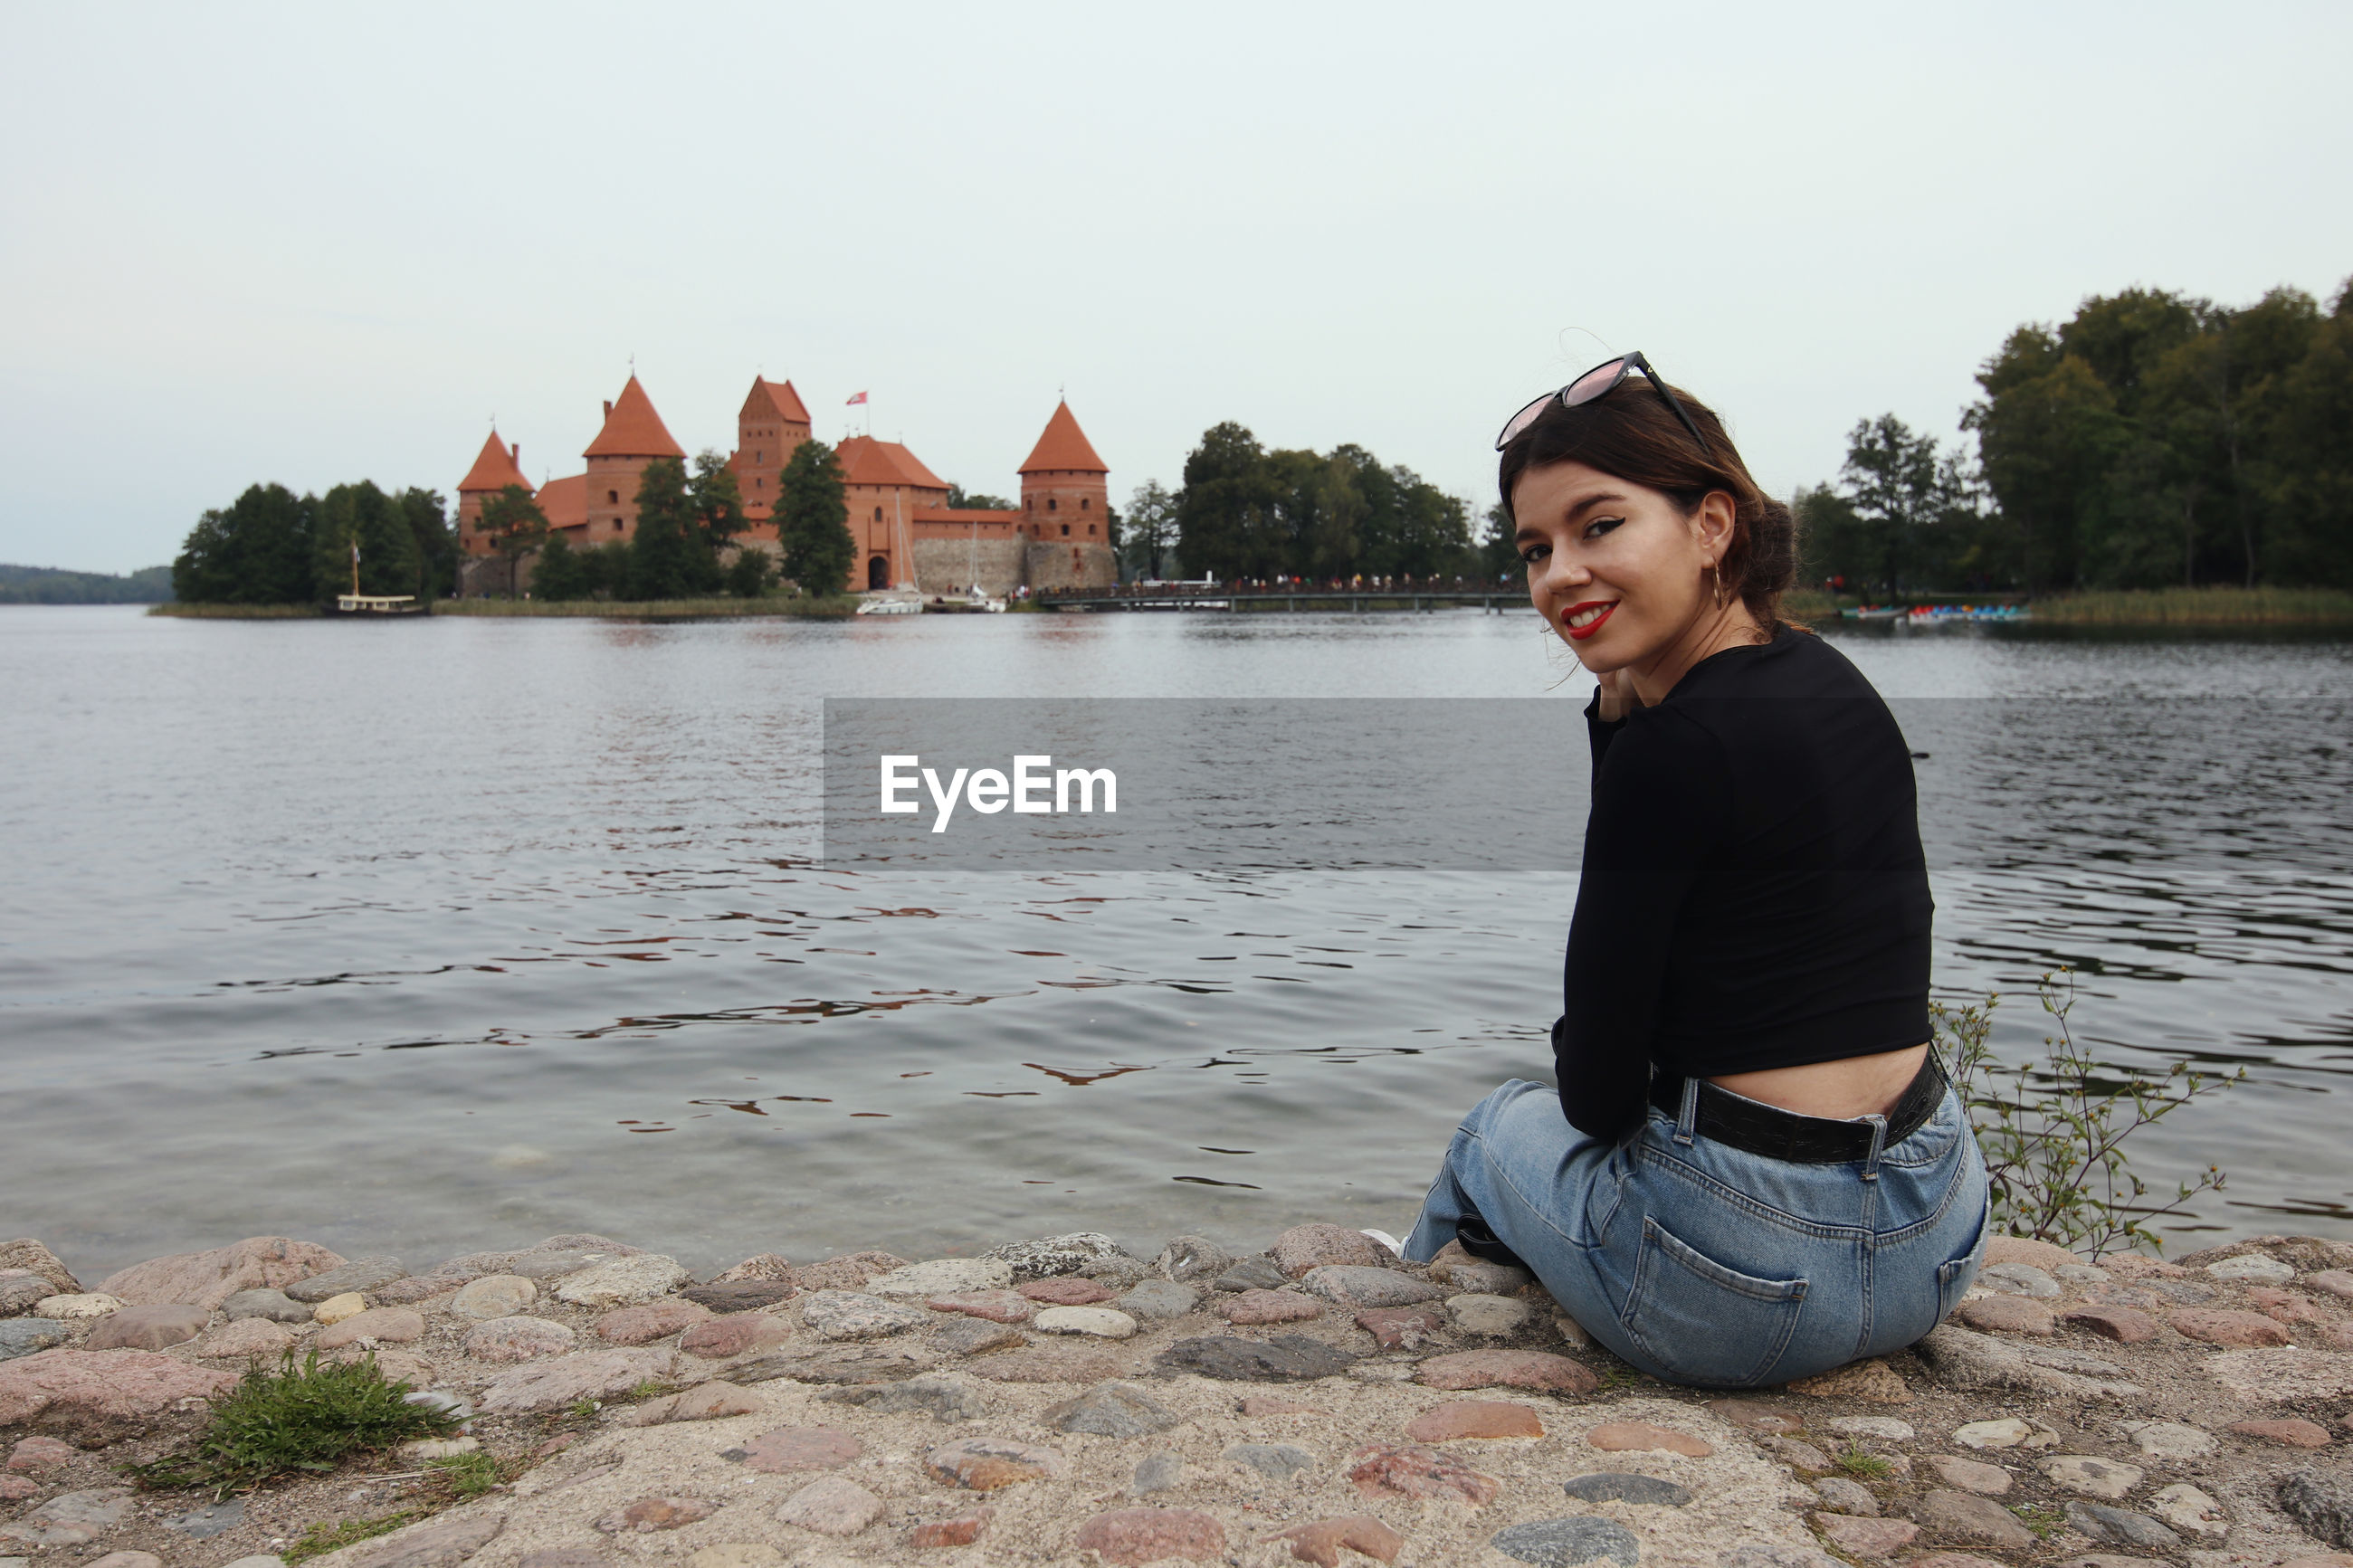 Portrait of young woman sitting by lake against sky